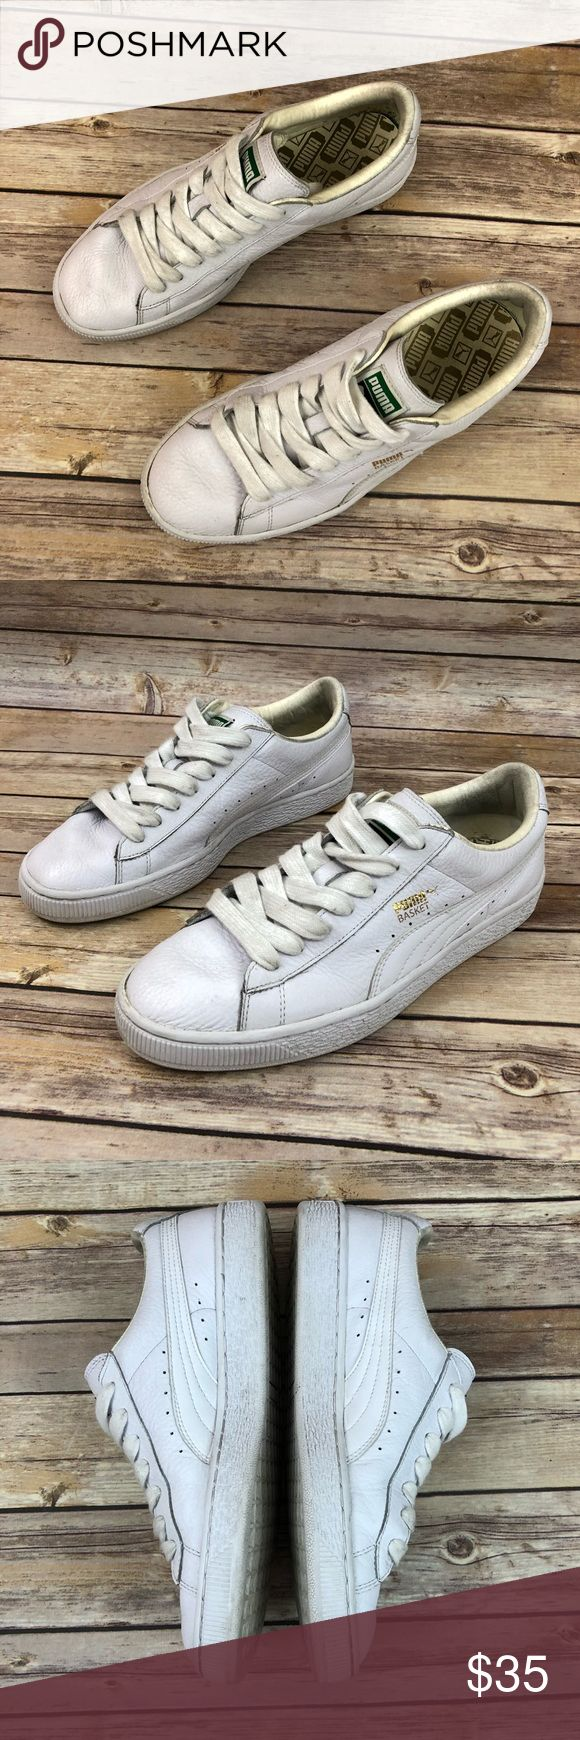 Puma Basket classic white sneakers Classic white puma basket sneakers. Preloved? Shows signs of normal wear. Please refer to photos. Puma Shoes Athletic Shoes